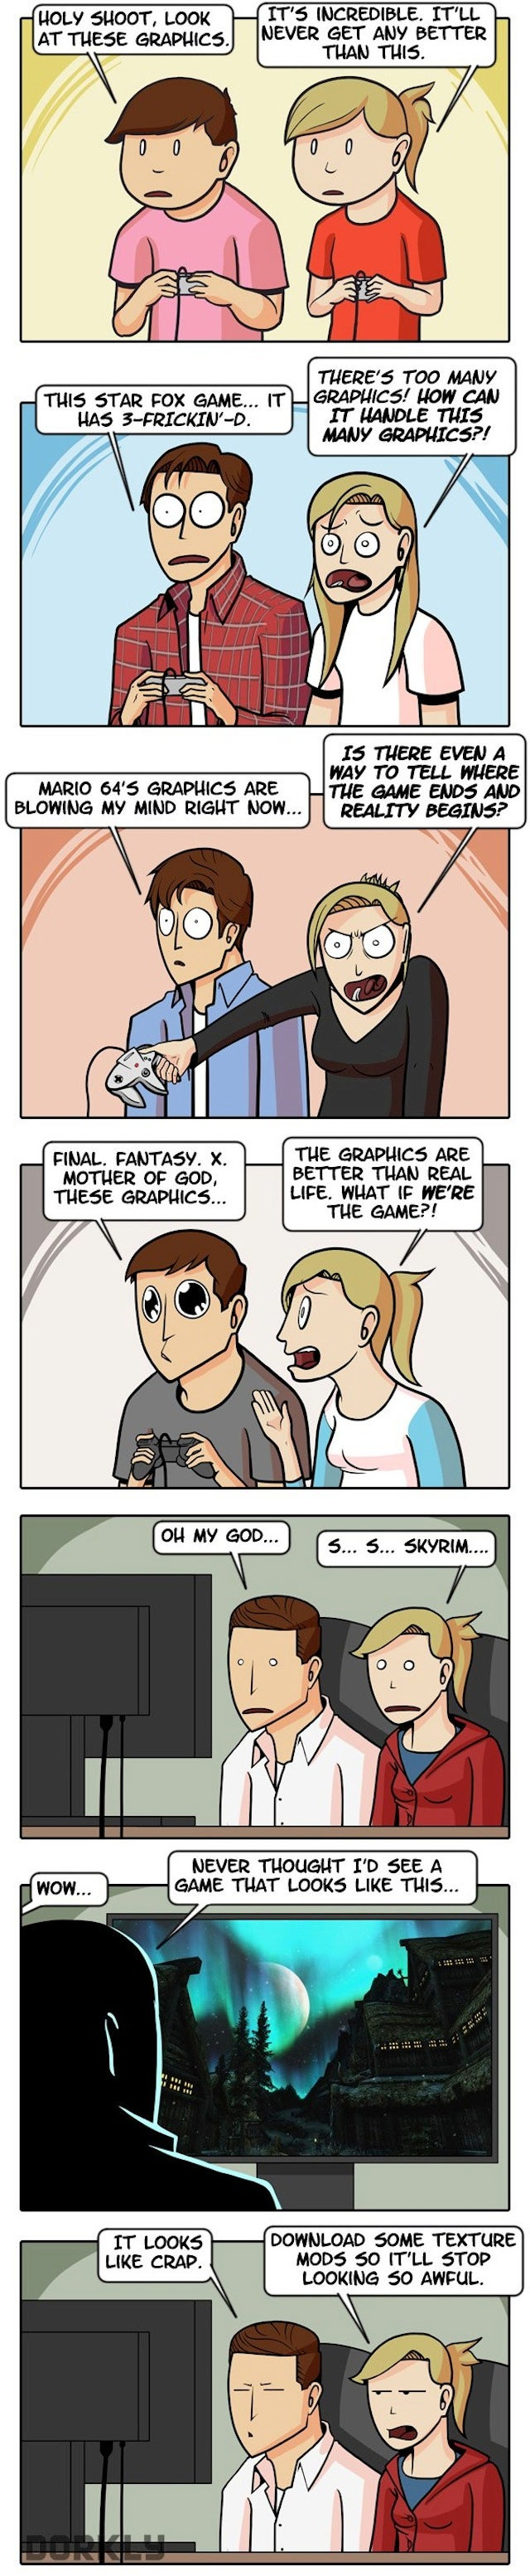 The Totally True History of Video Game Graphics